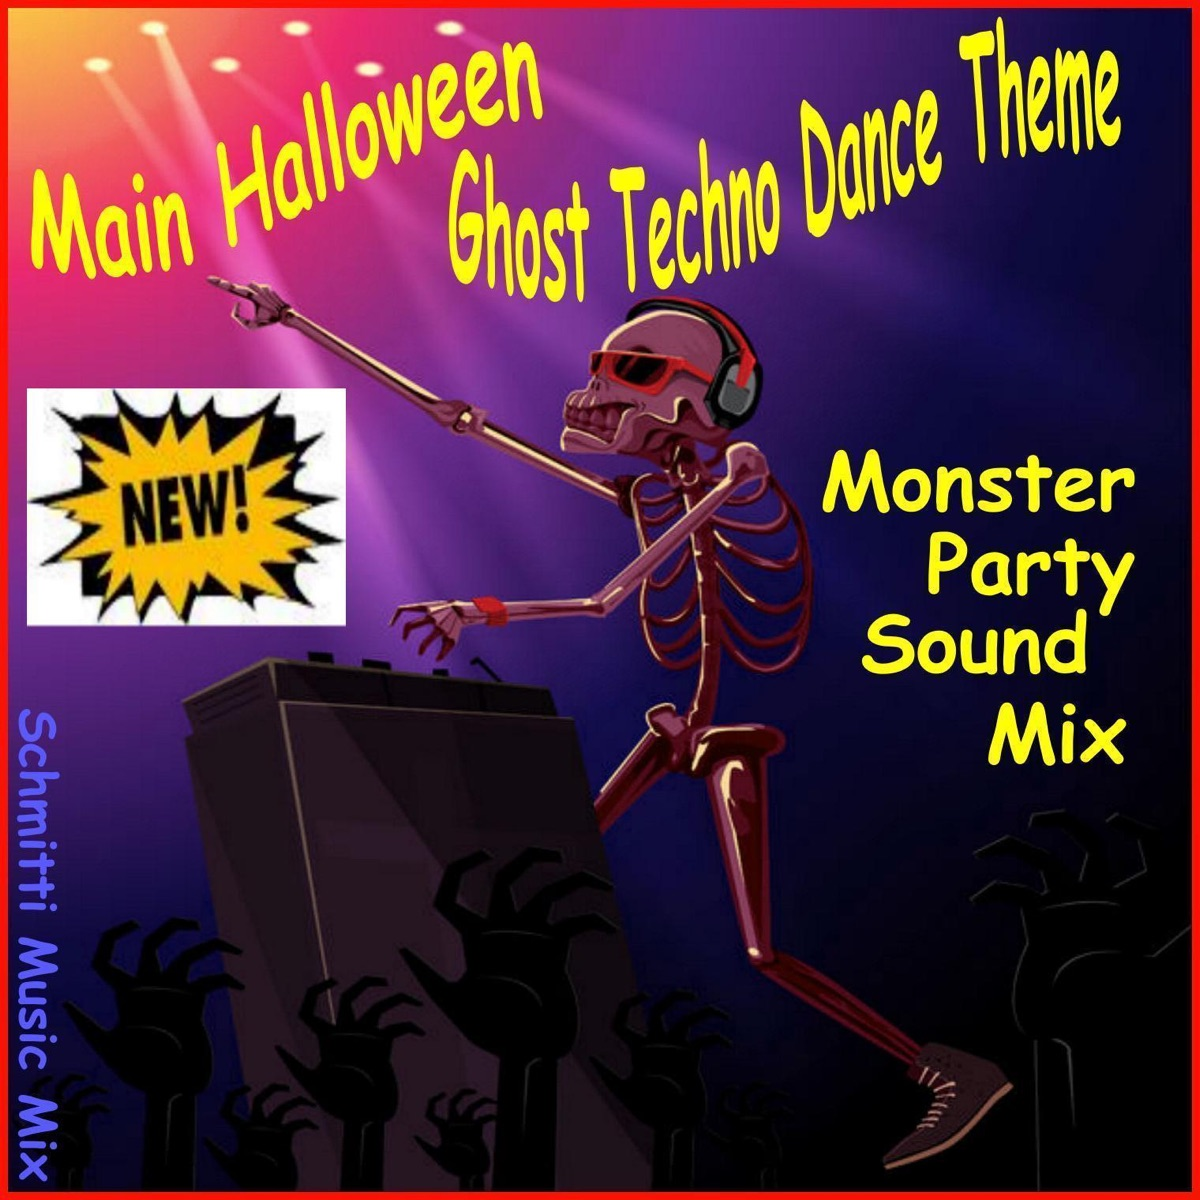 Main Halloween Ghost Techno Dance Theme Album Cover by Schmitti